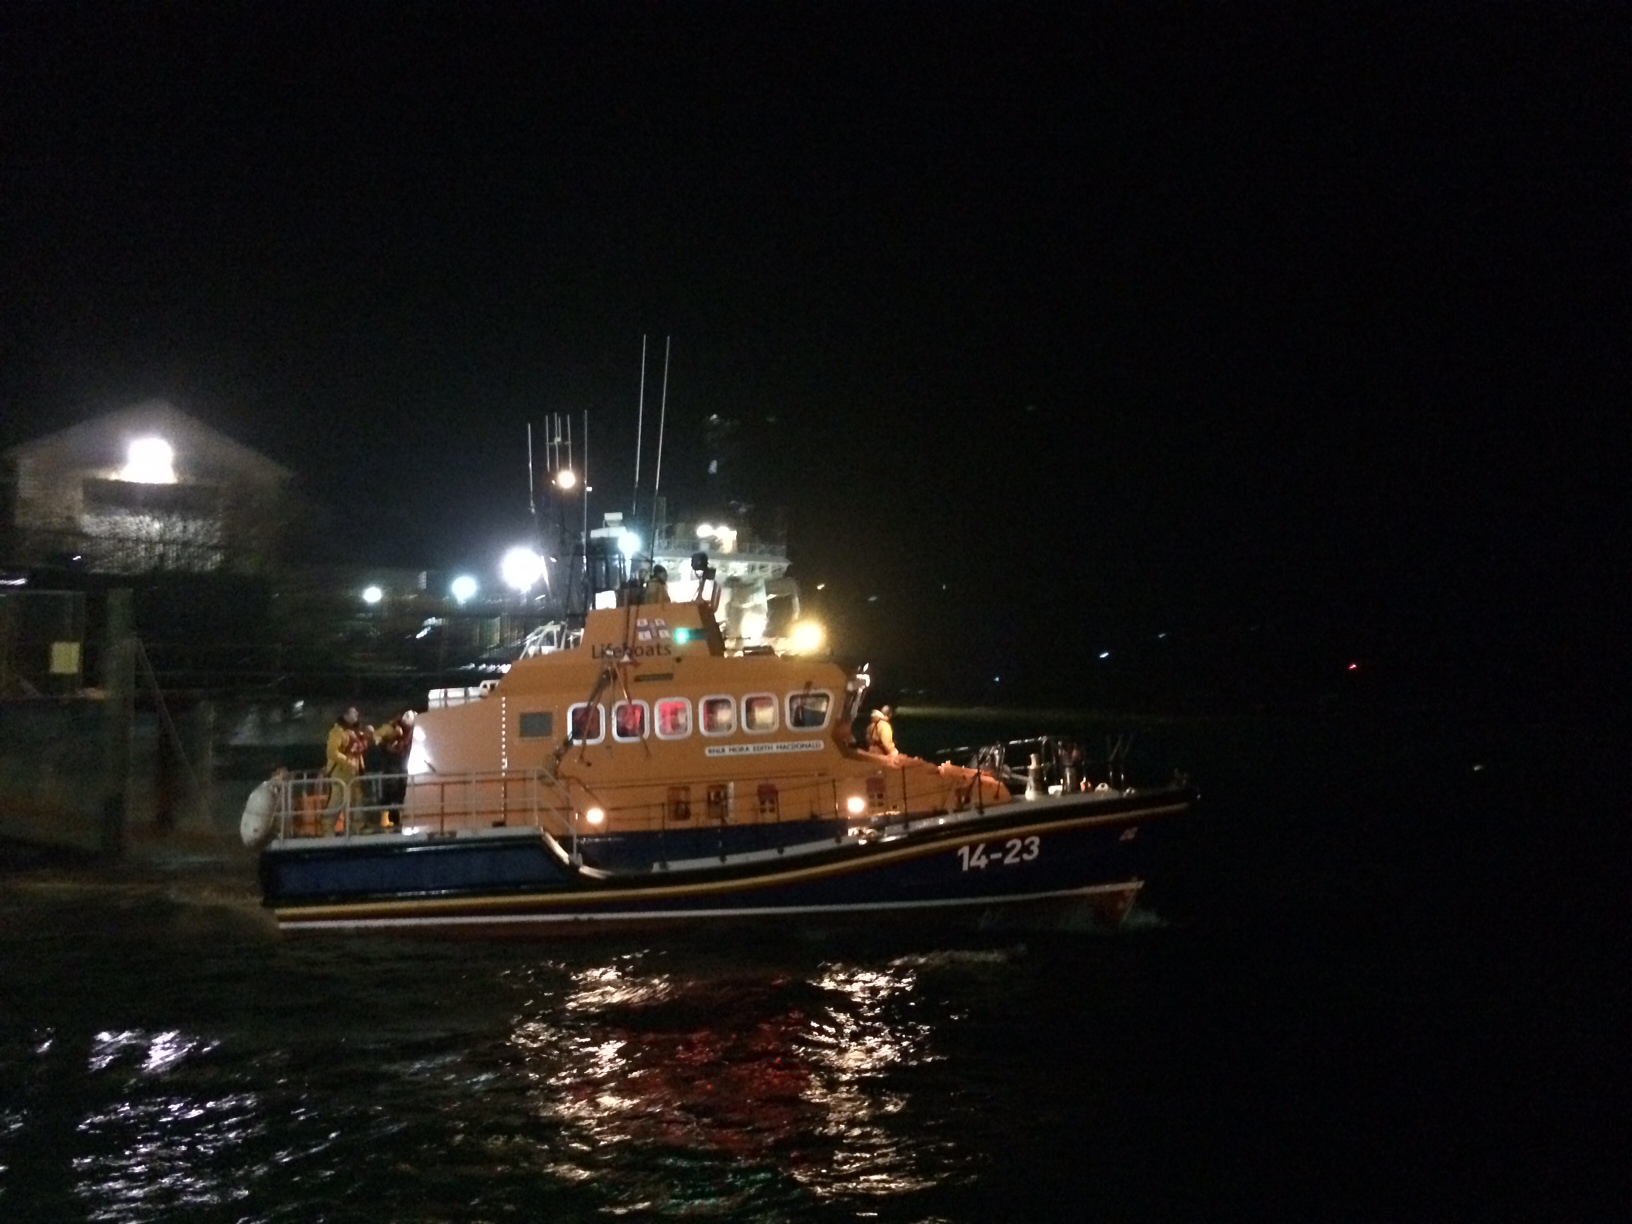 The Oban Lifeboat was out last night.